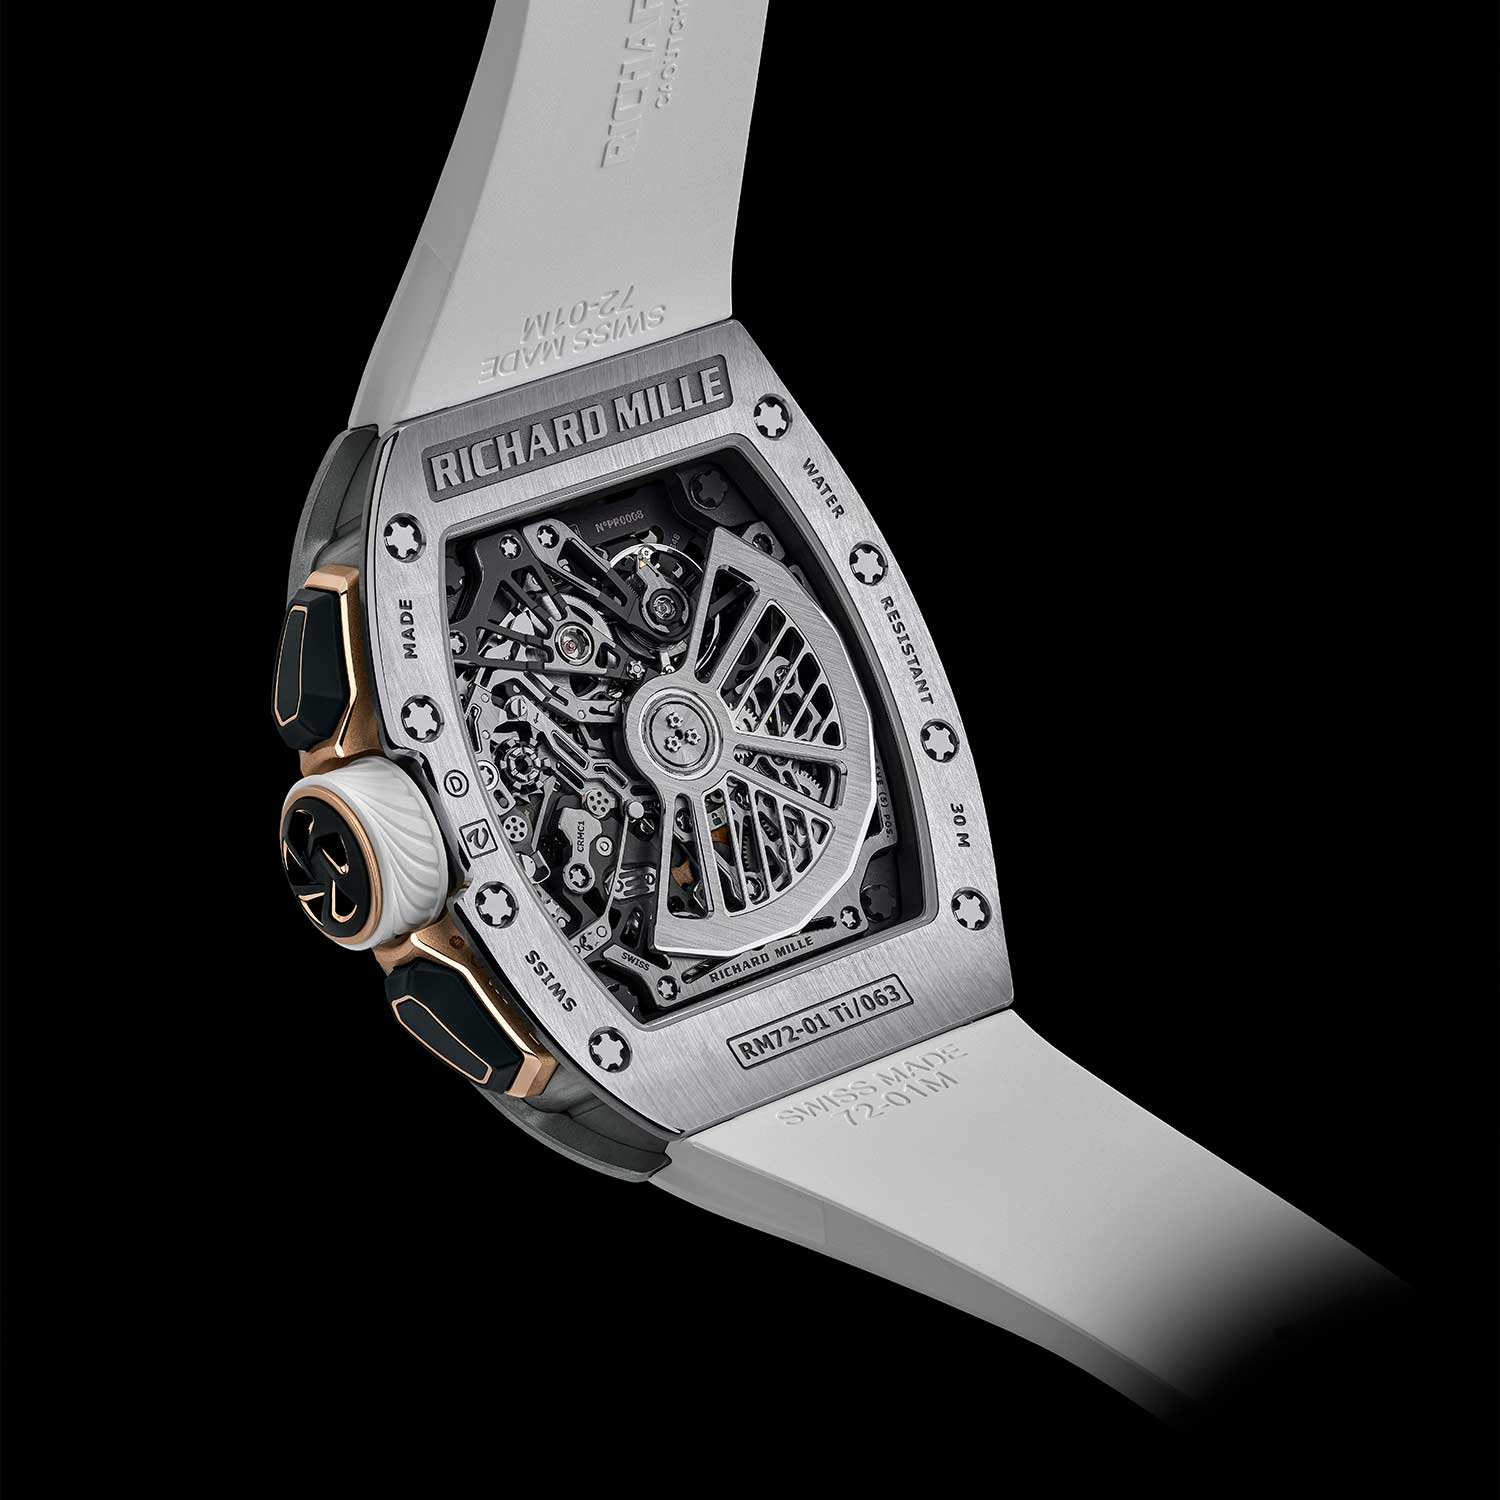 The calibre CRMC1 seen here through the caseback of the RM 72-01 Lifestyle Chronograph in titanium